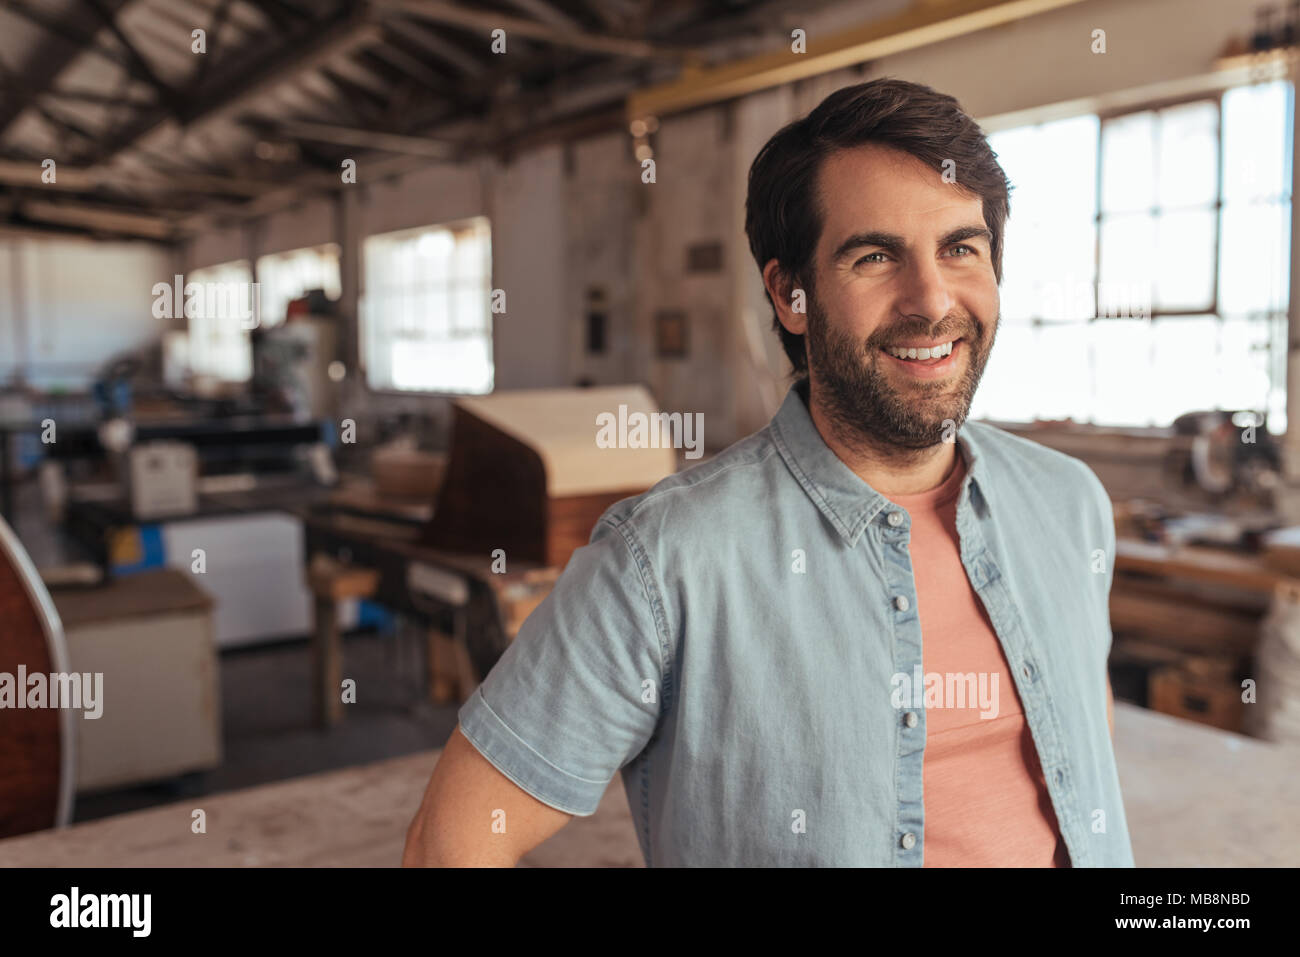 Smiling woodworker leaning on a table in his woodworking studio - Stock Image